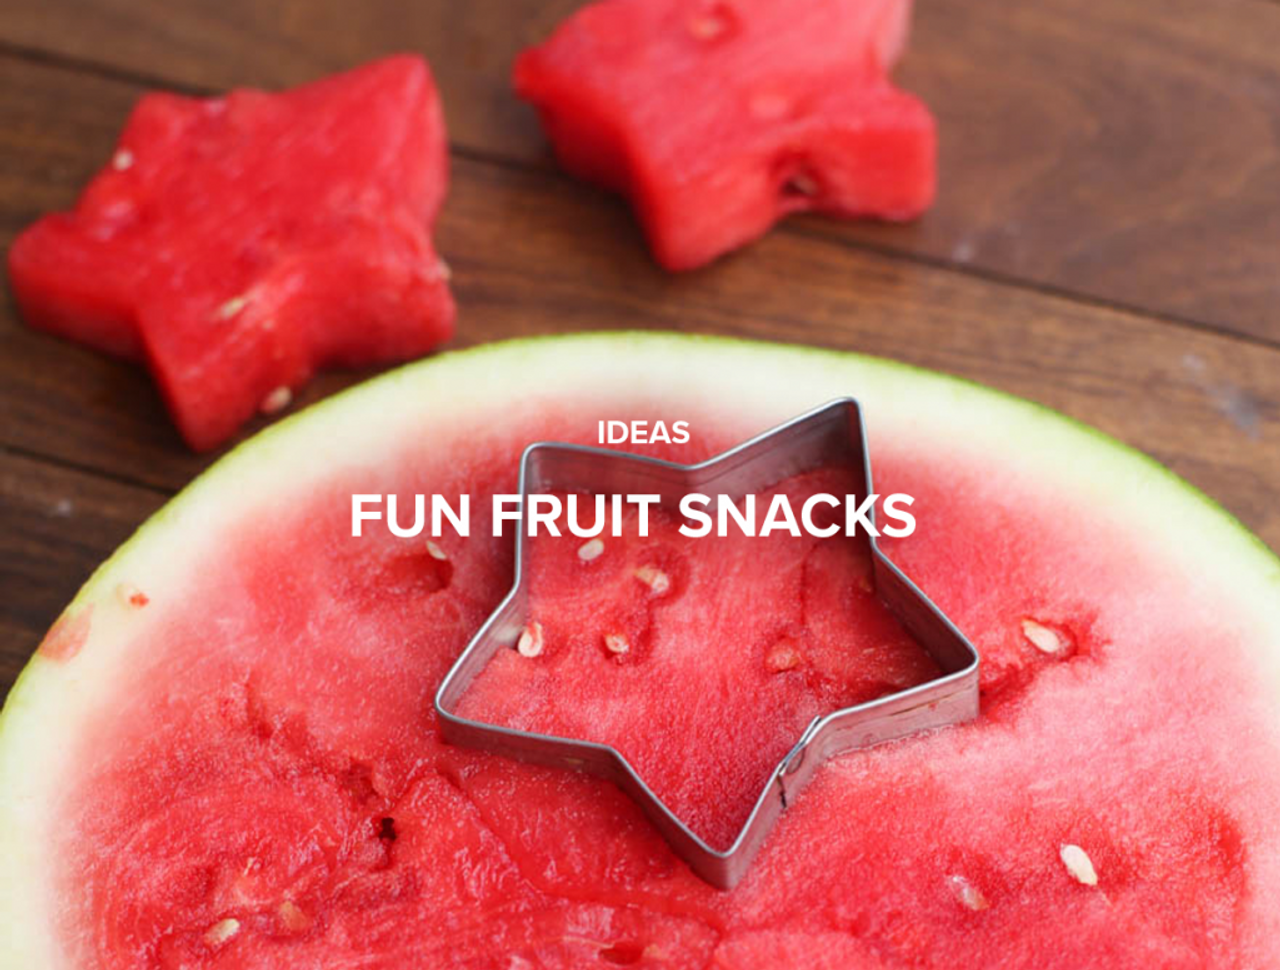 Fun Fruit Snacks